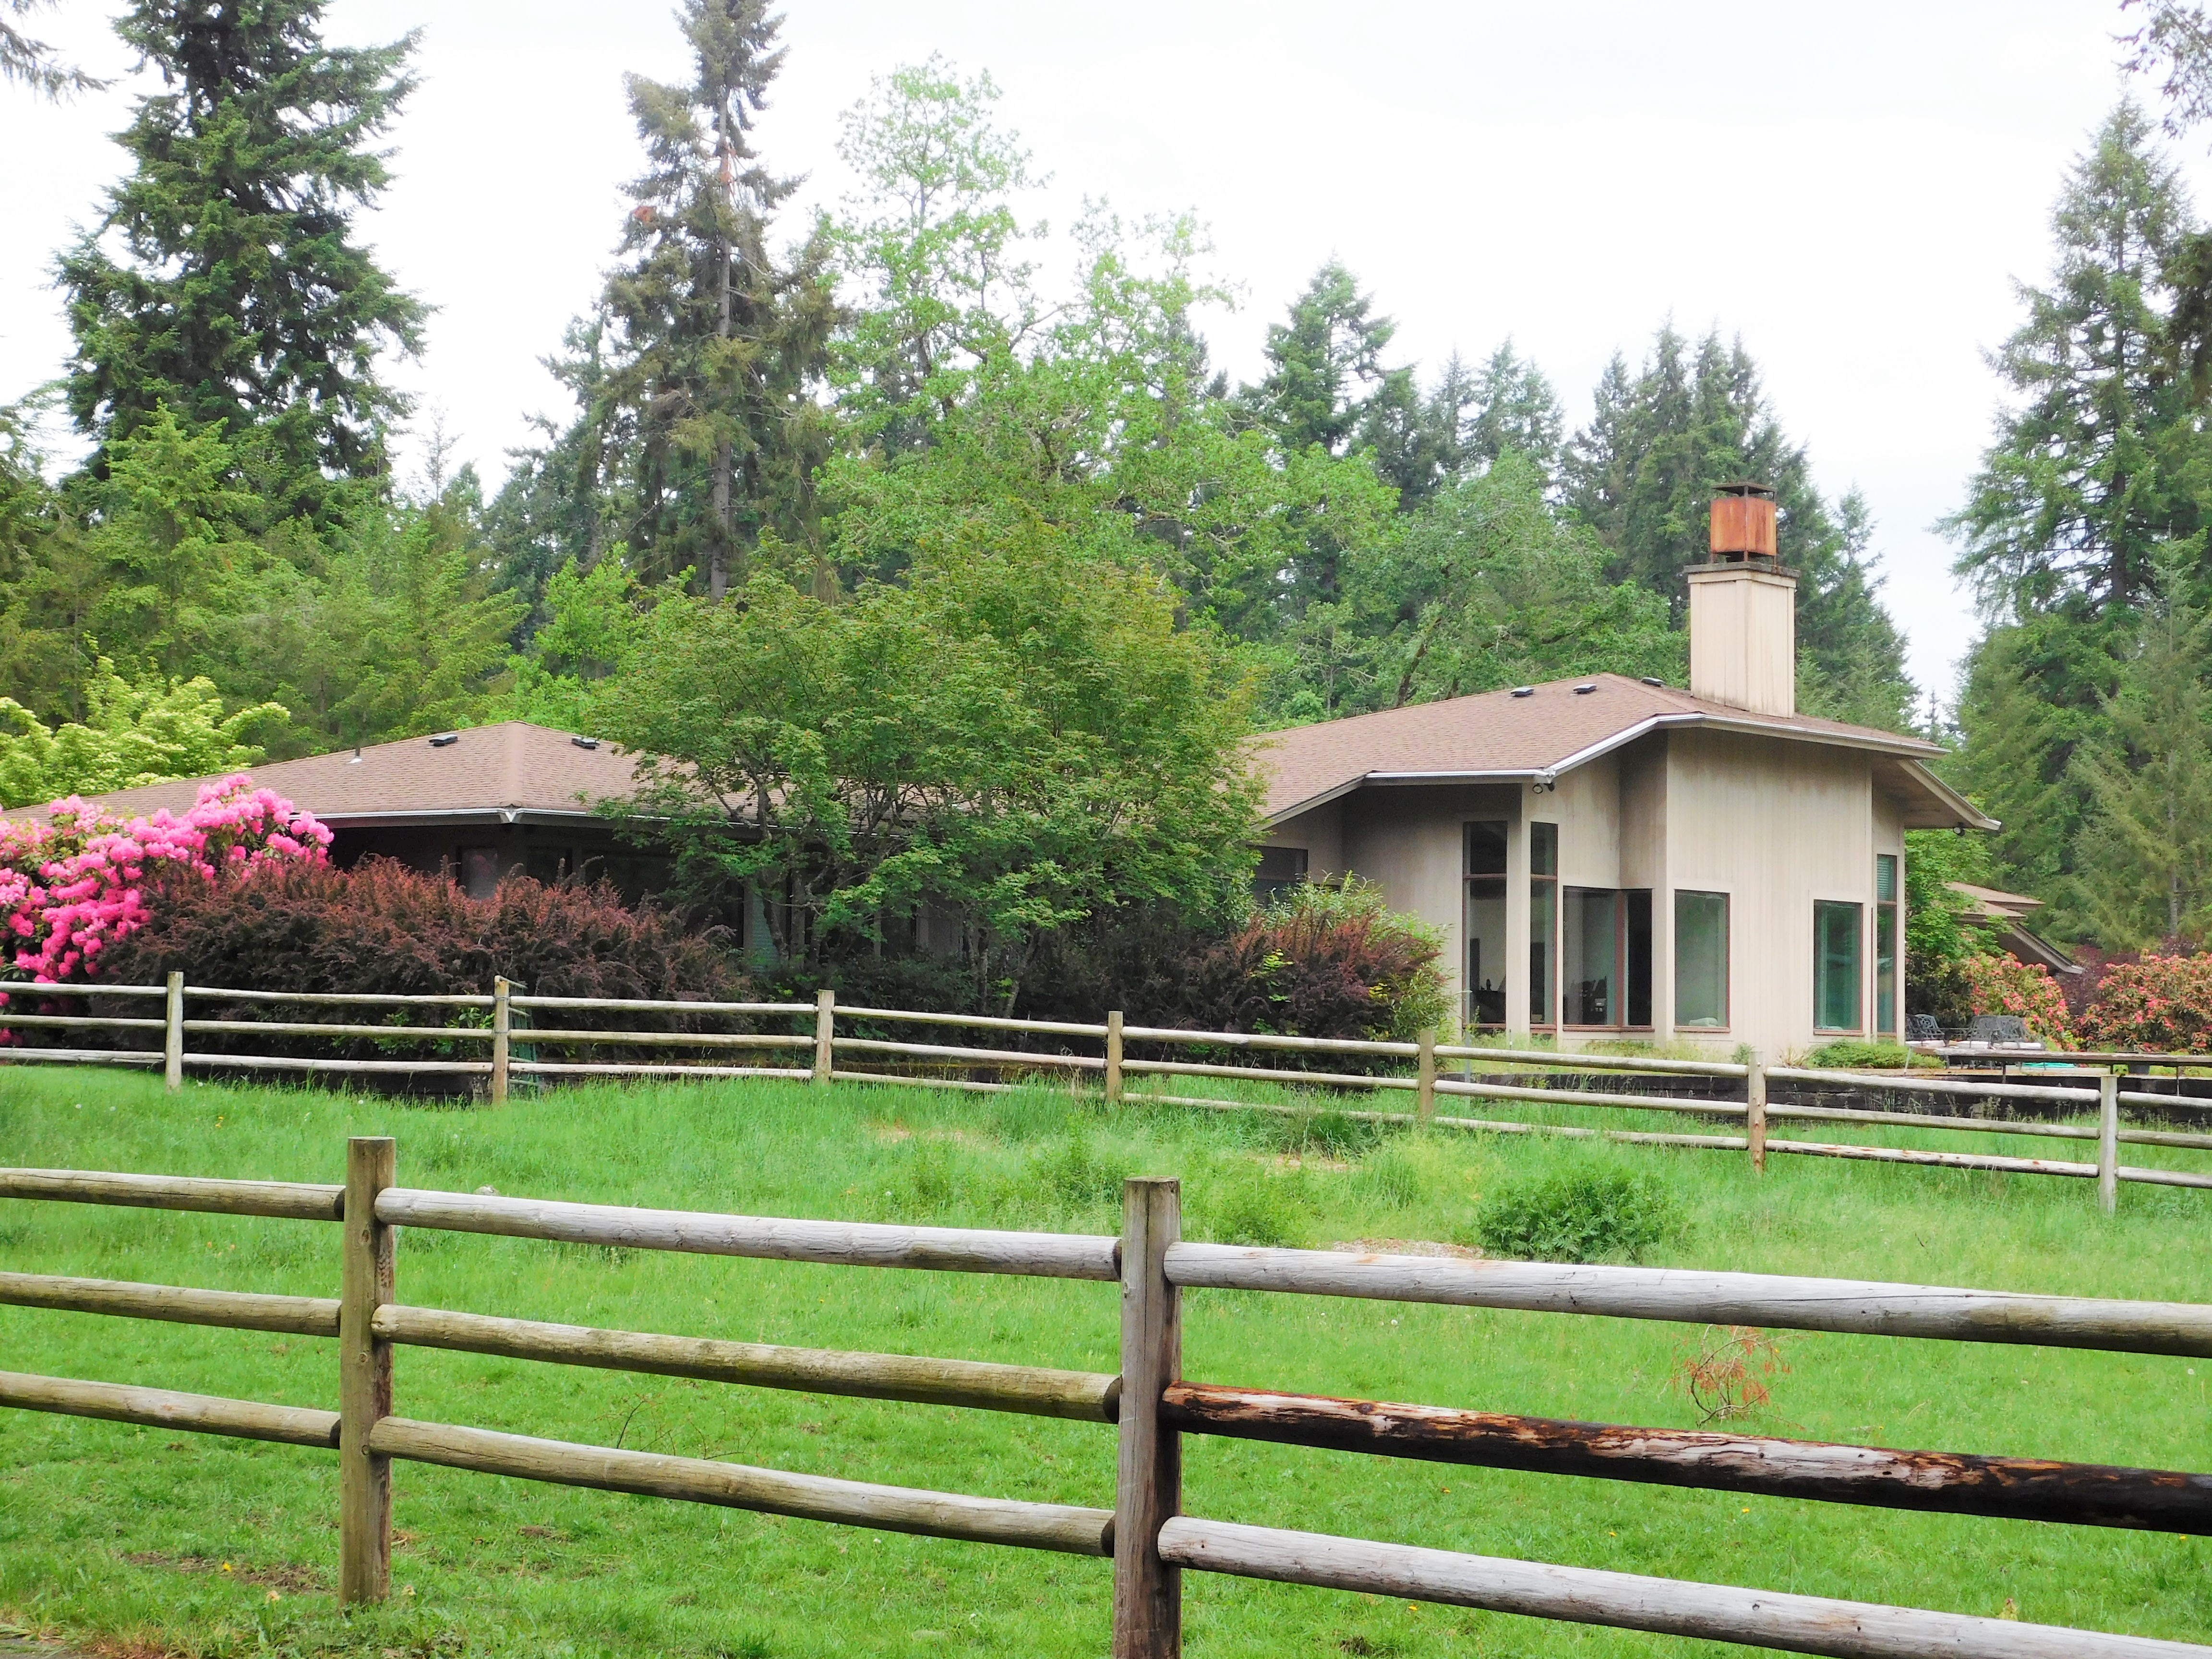 Single Family Home for Sale at Elk Plain Equestrian Estate 26315 34th Ave E Elk Plain, Washington 98387 United States